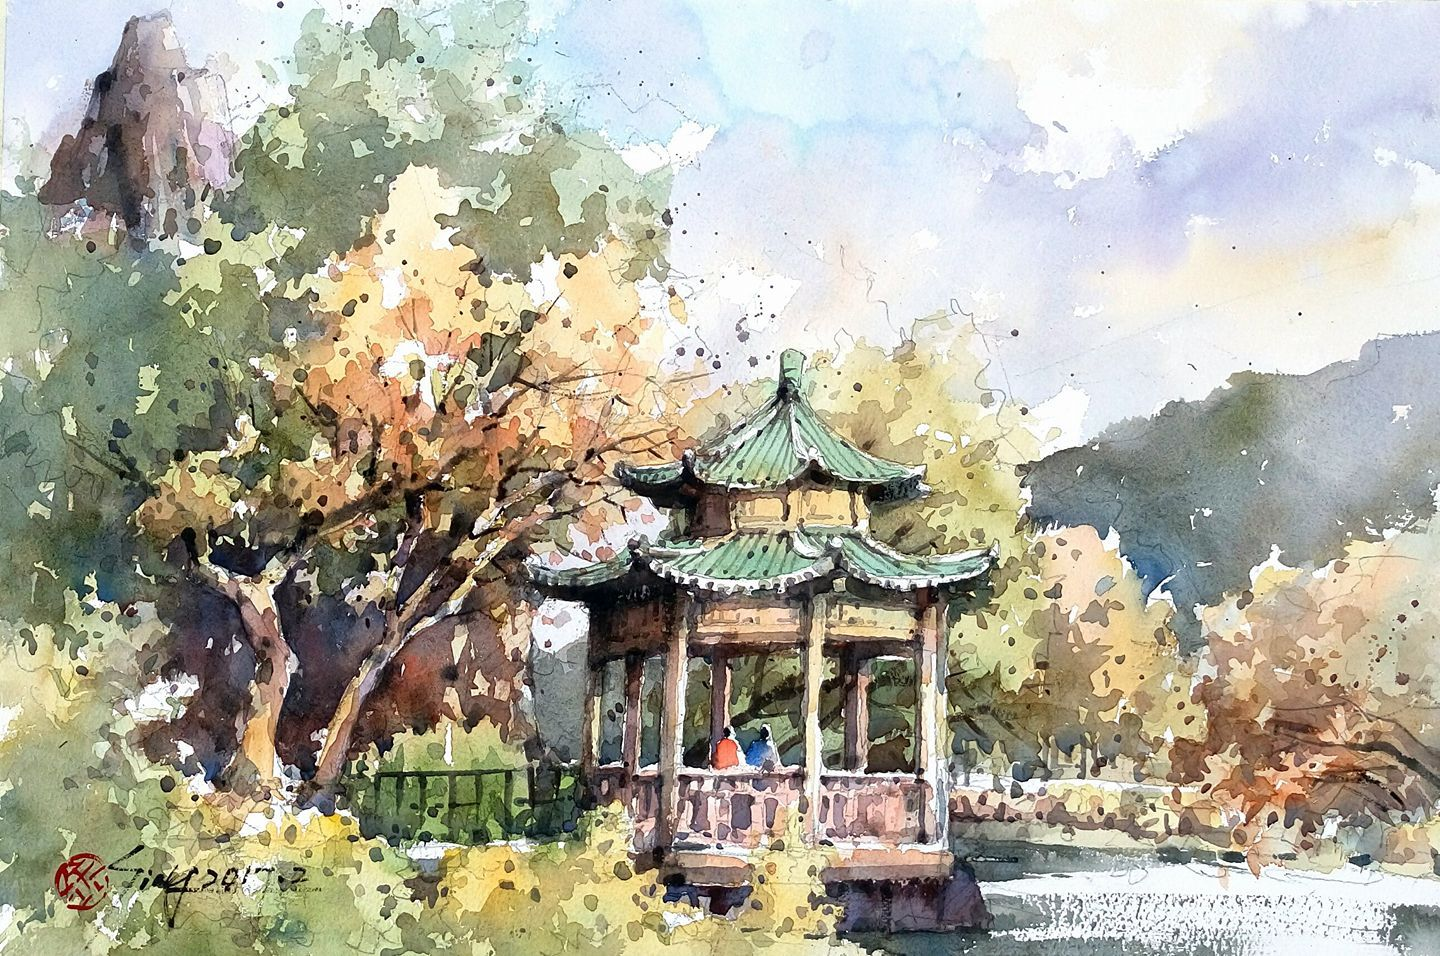 1440x956 Guo Kim Seung, Creek Park Watercolor Landscapes With